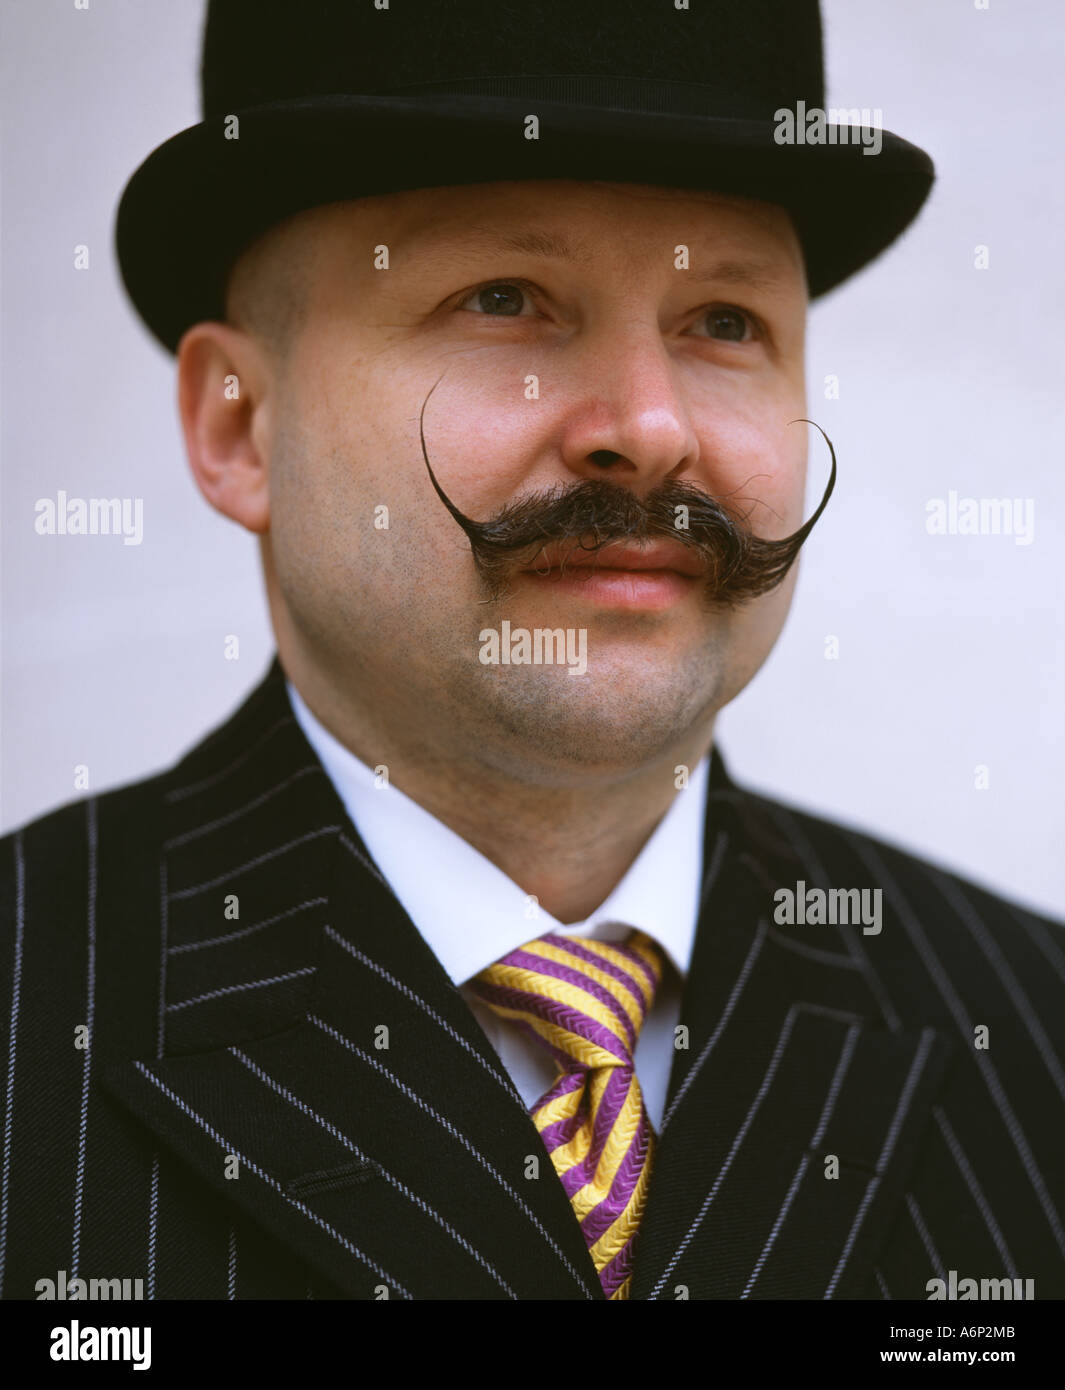 Man wearing a suit with a Salvador Dali moustache - Stock Image